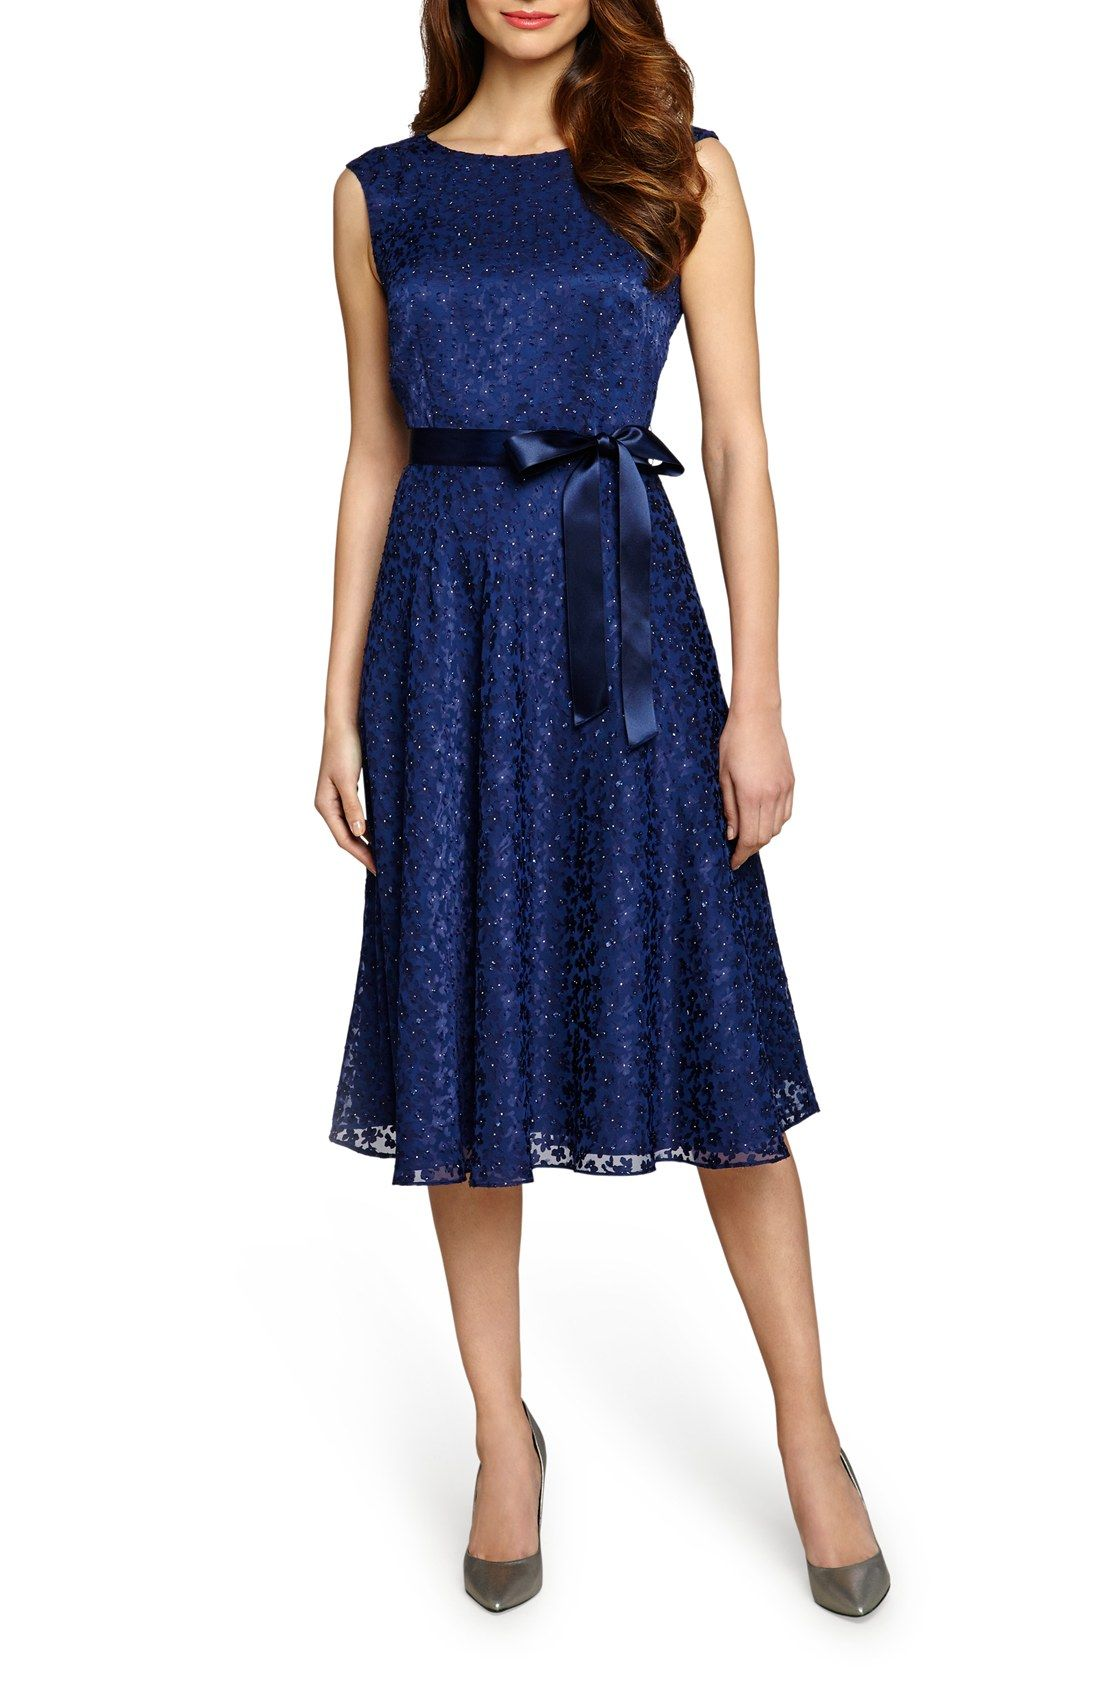 Blue Lace Overlay Dress Nordstrom Carley Connellan